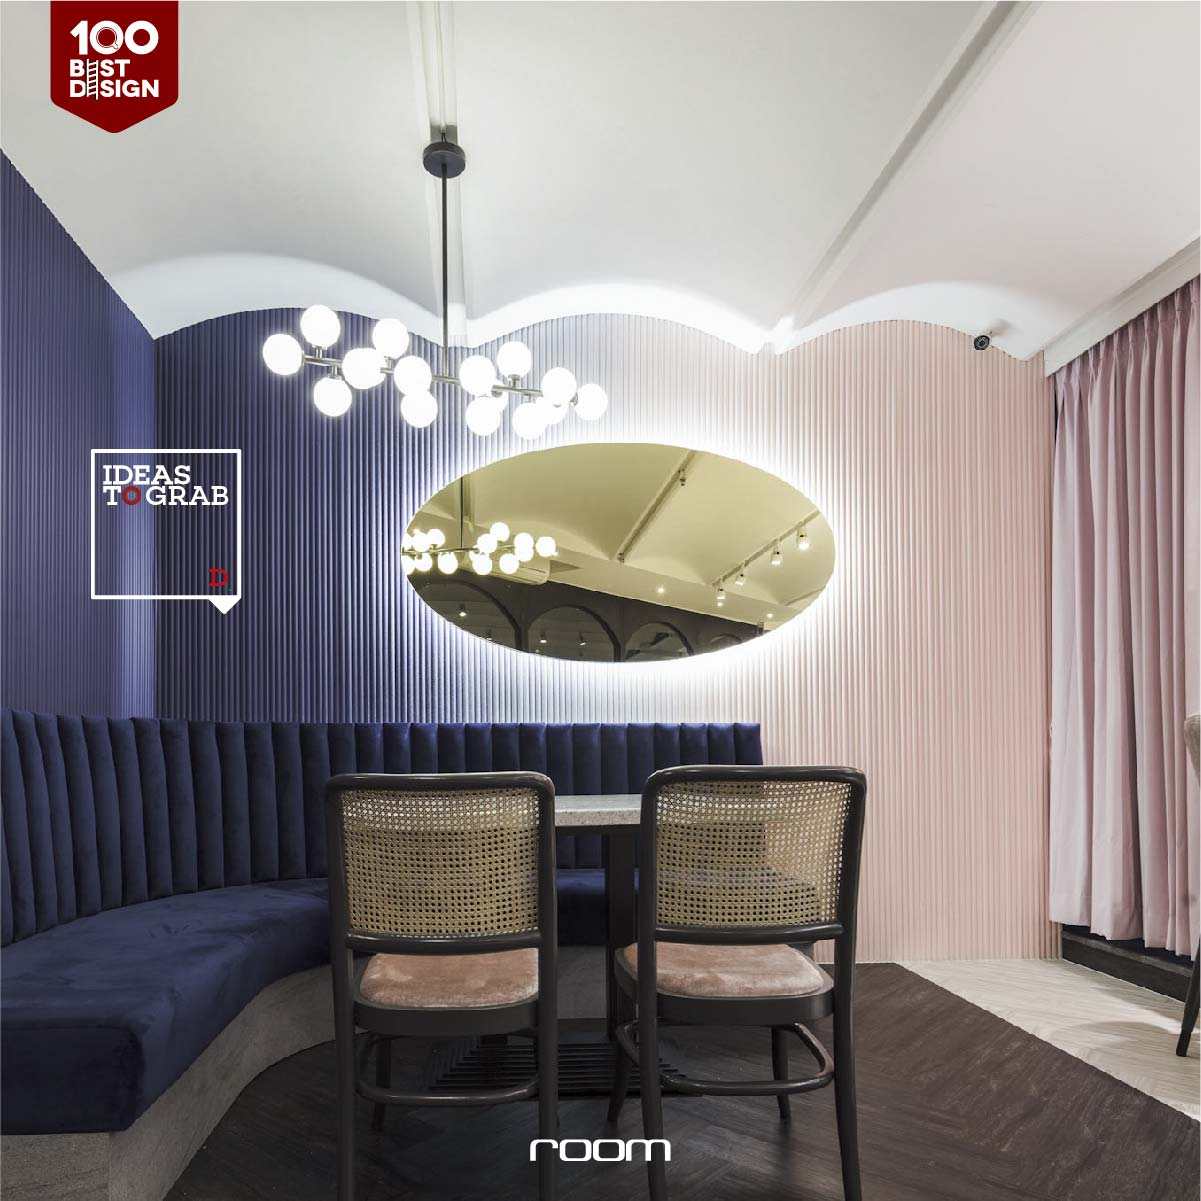 Pastel Color Cafe Decoration Idea - Wordenring